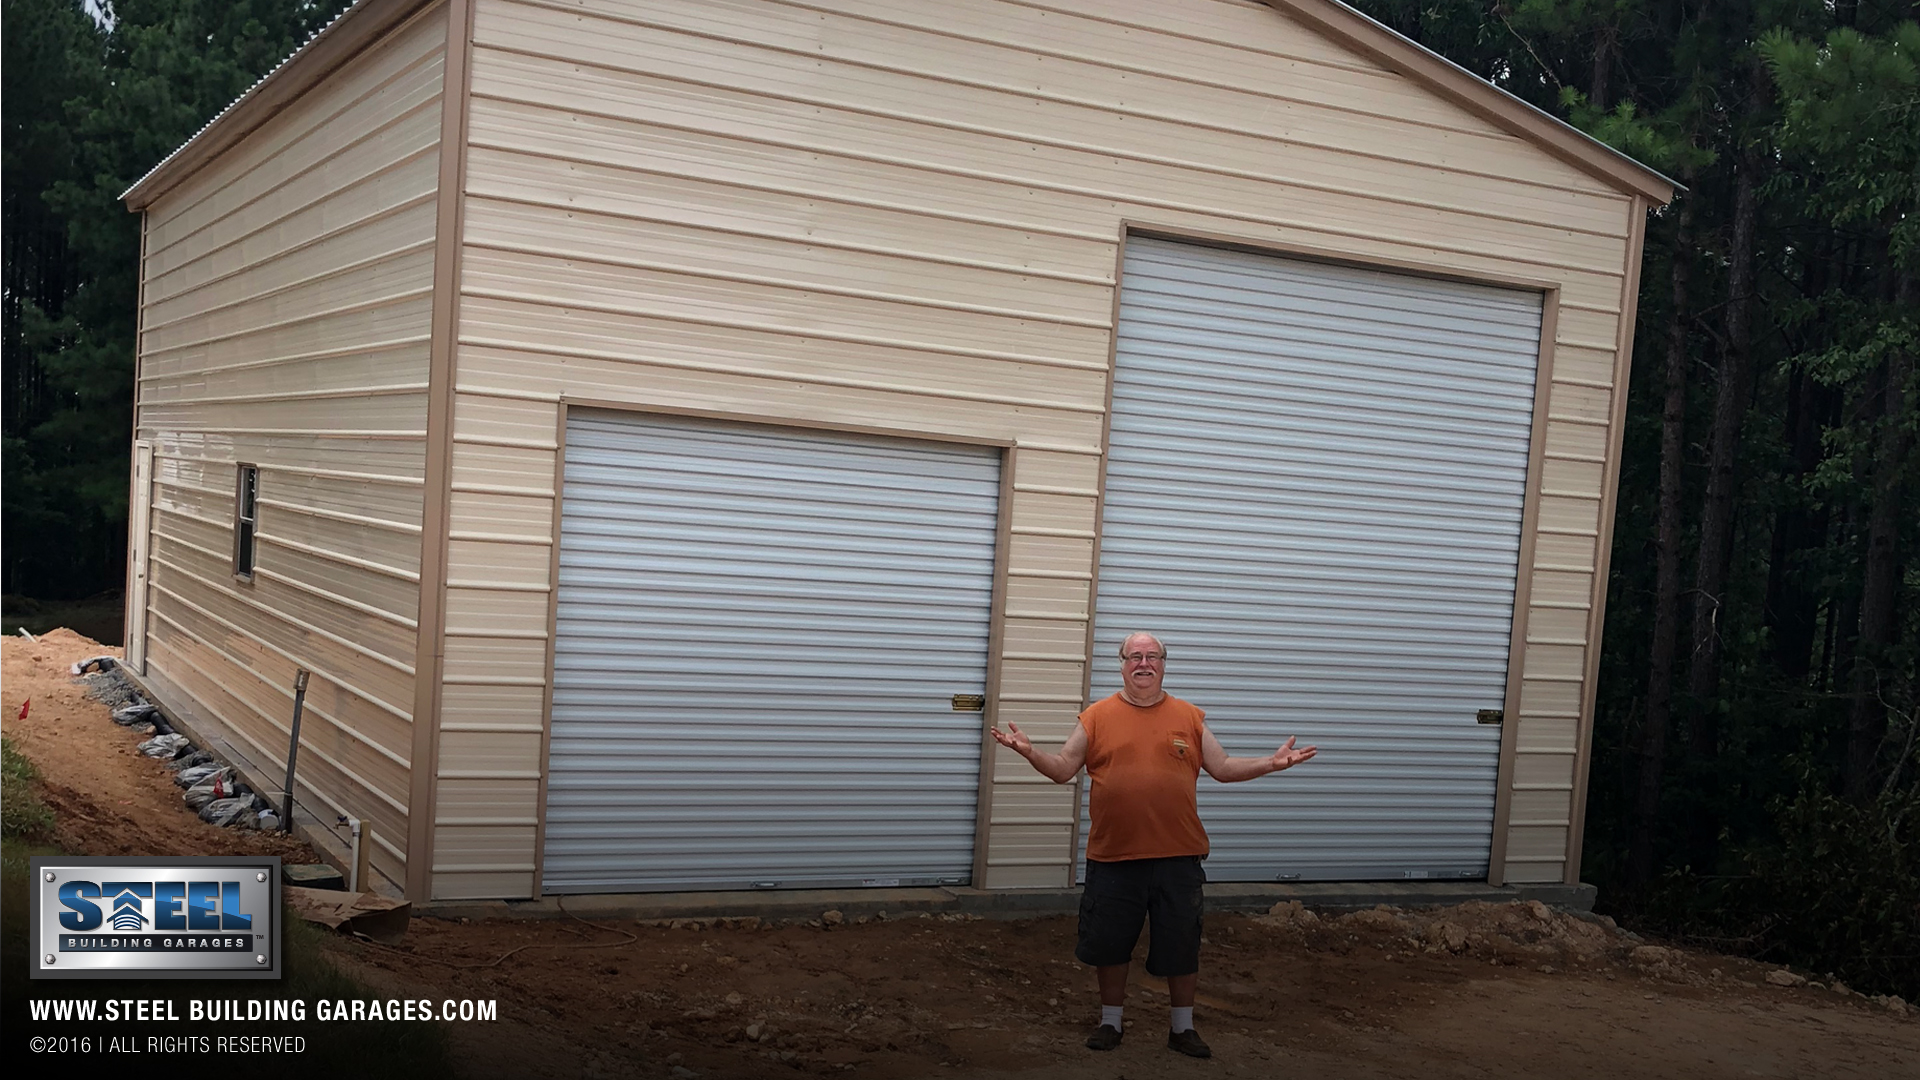 The finished garage with two different garage door sizes.